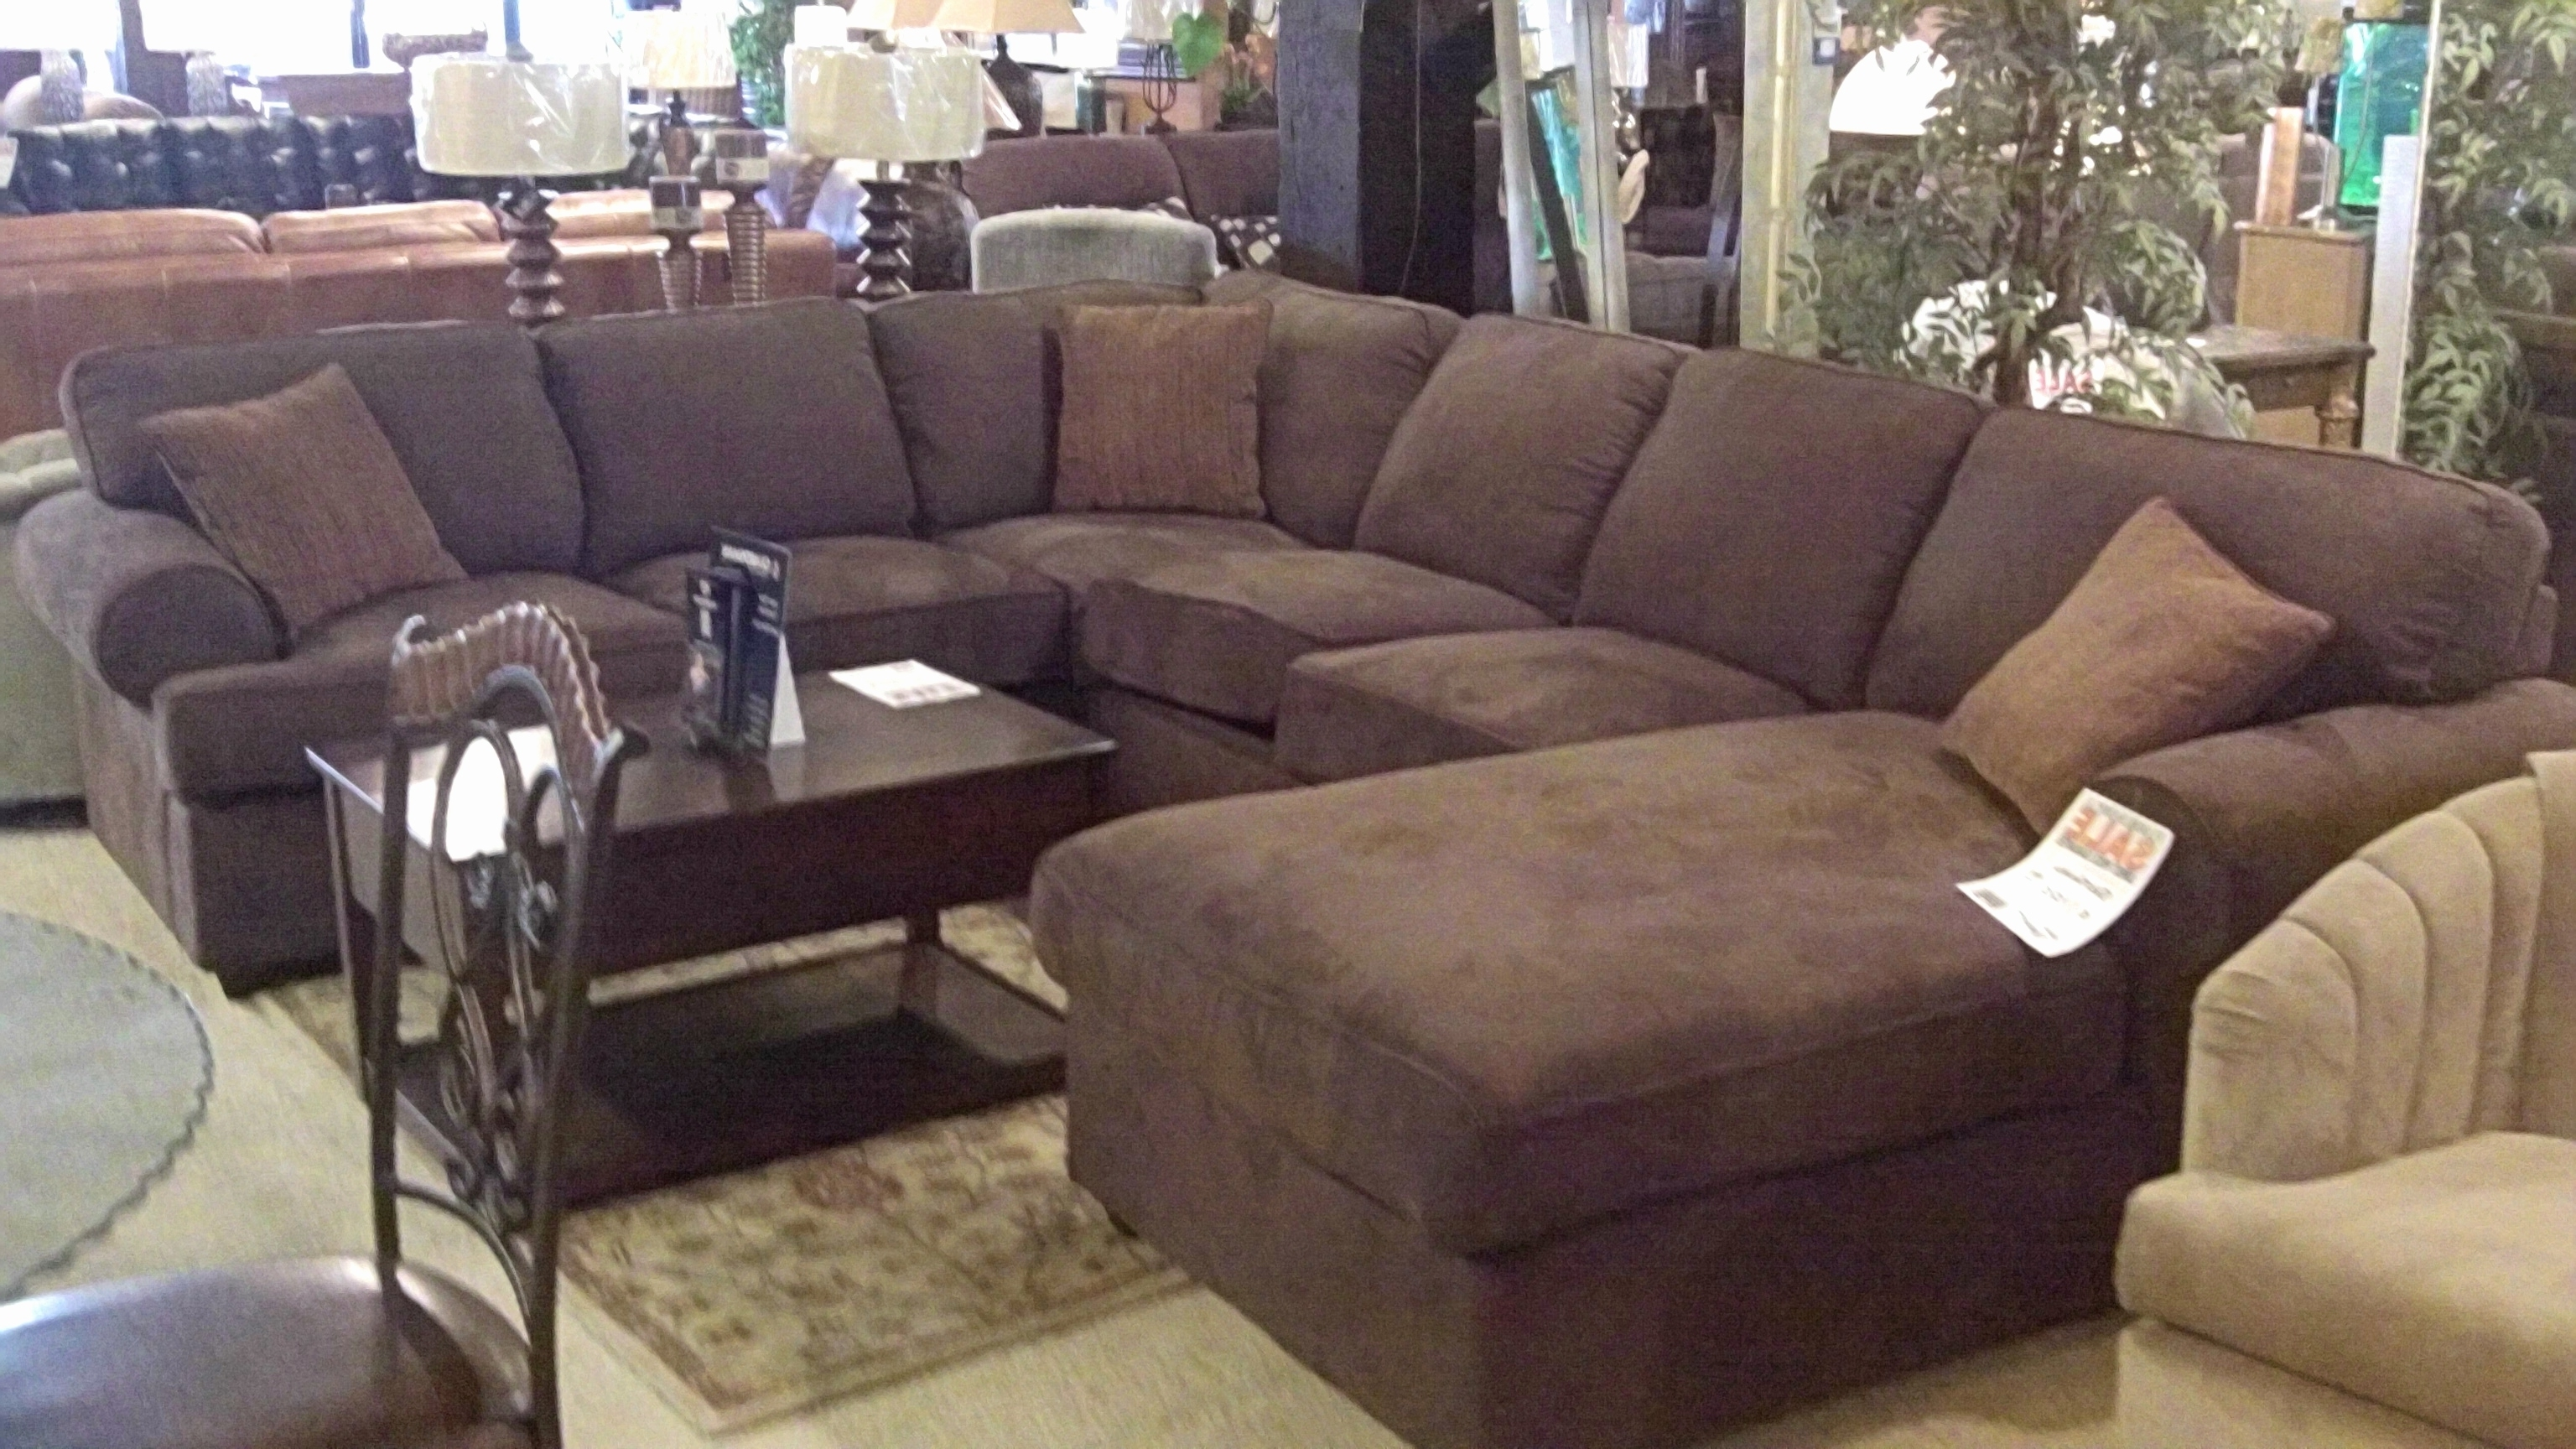 Best And Newest Luxury Down Filled Sectional Sofa 2018 – Couches And Sofas Ideas Intended For Down Filled Sofas (View 14 of 20)